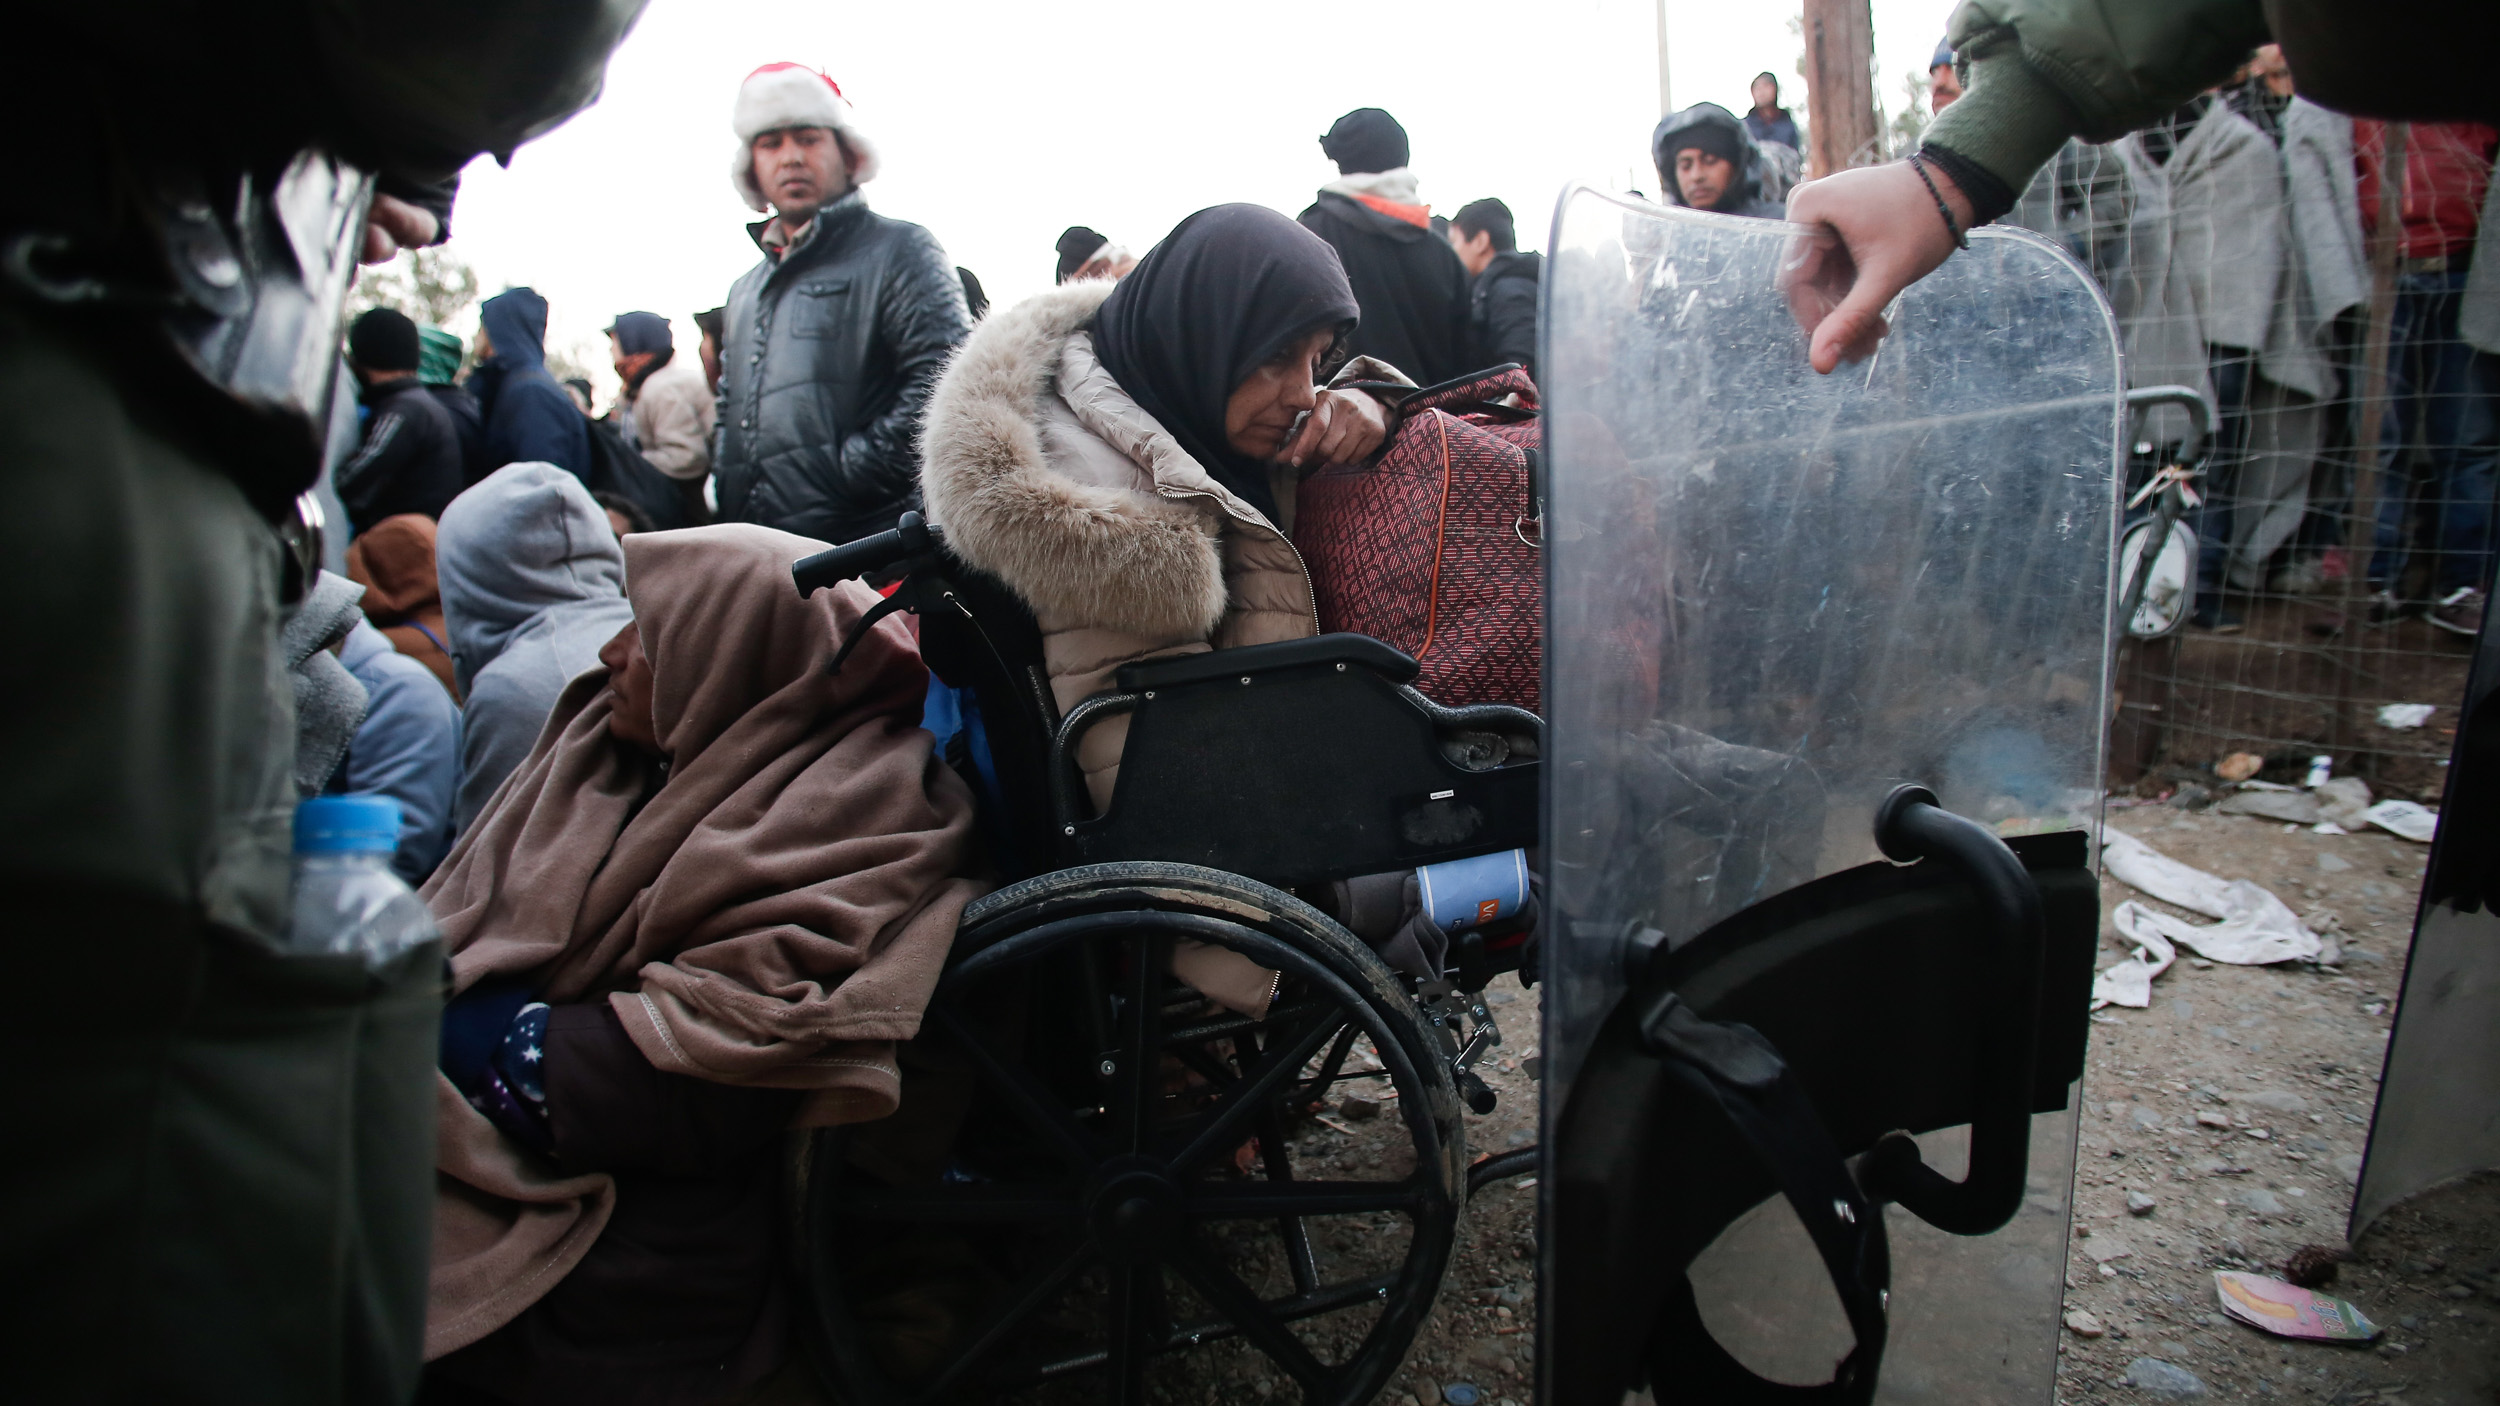 Migrants, even those in wheelchairs, have spent the last two weeks at Greece's border with Macedonia